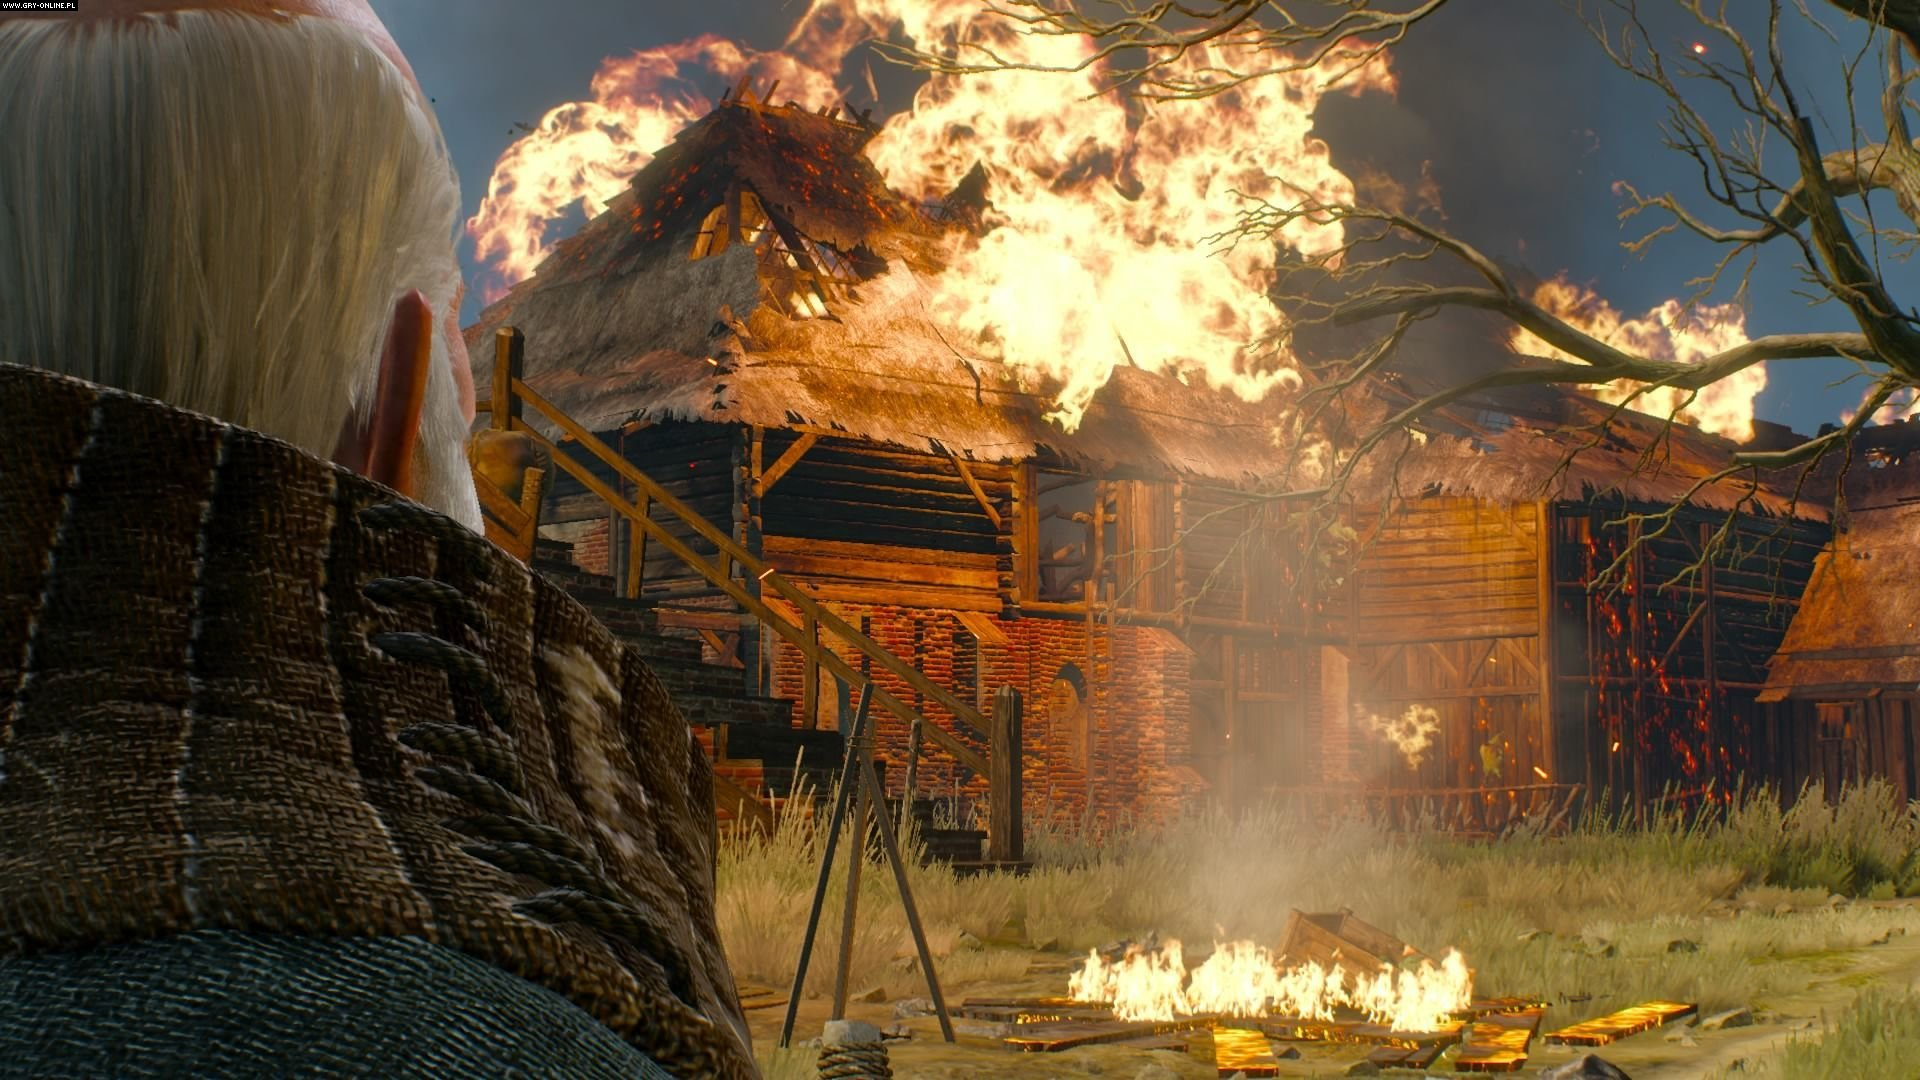 The Witcher 3: Wild Hunt PS4 Games Image 29/209, CD Projekt RED